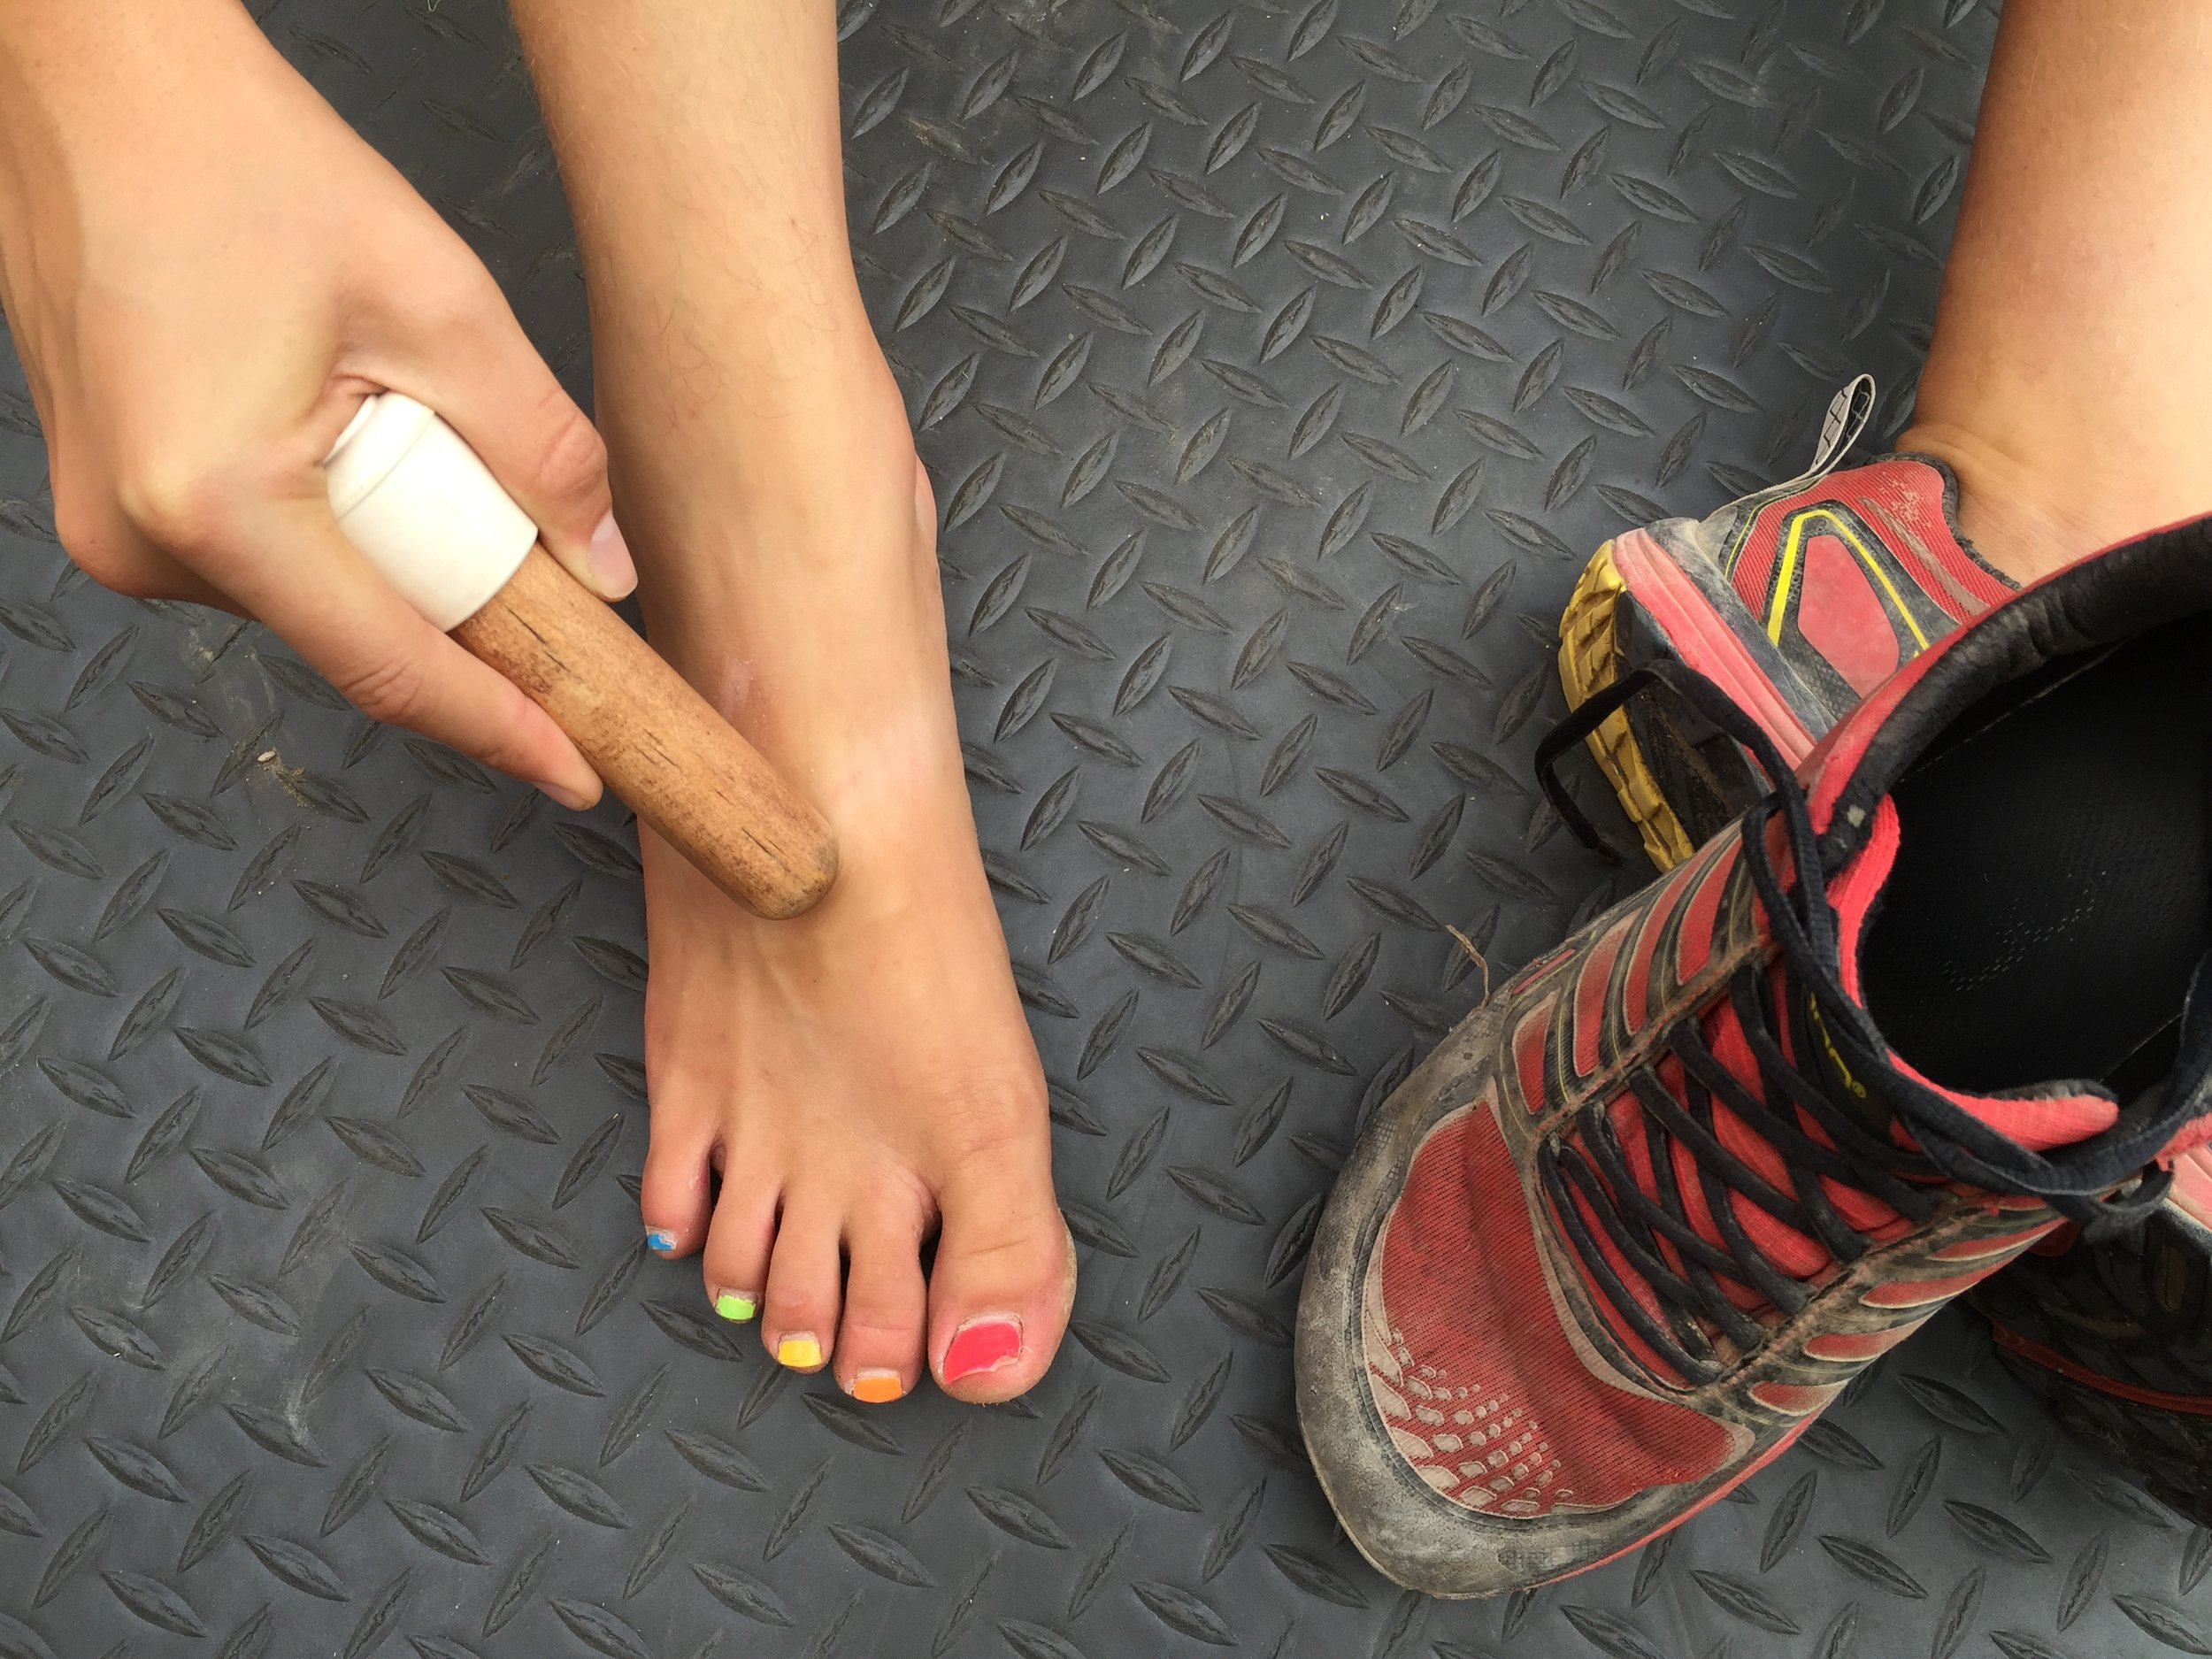 Foot Top/Bottom: - With over 100 muscles, tendons, and ligaments your foot, and the prolonged use it undergoes, is prone to injury. With proper form (to learn go to targetreleaserecovery.com) and very careful massaging you can assuage that. Stay away from sensitive areas like the Achilles tendon.